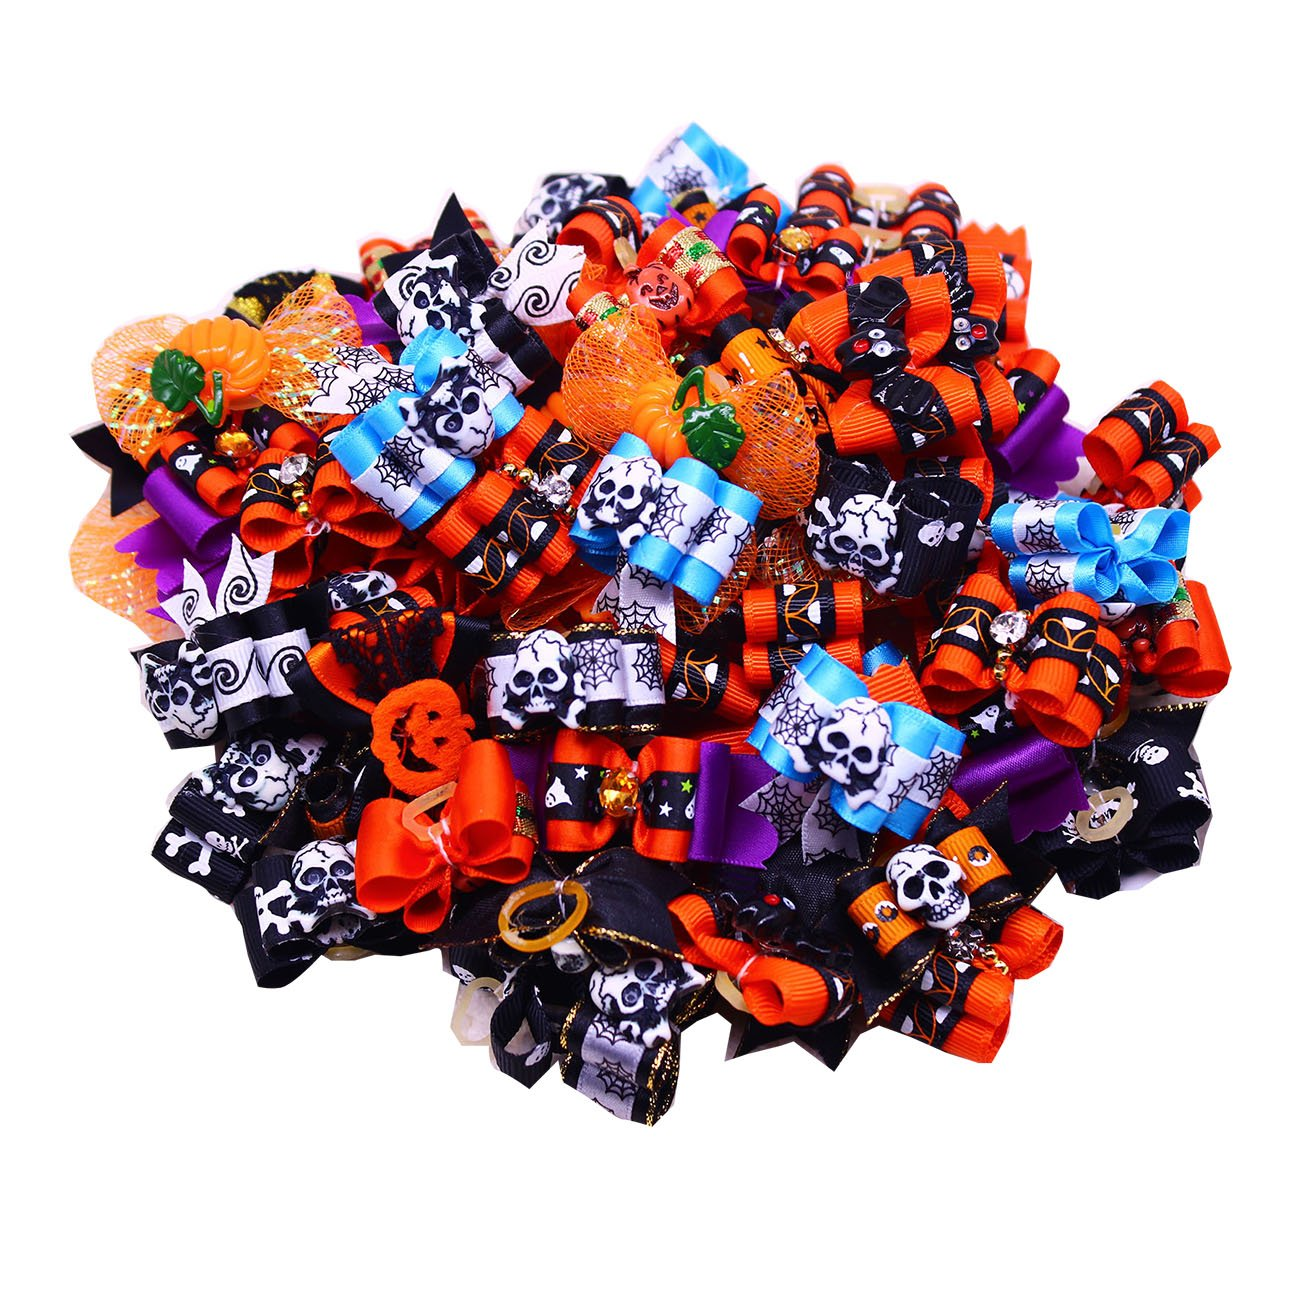 Yagopet 50pcs/pack Dog Hair Bows Halloween Styles Mixed Dog Bows for Holidays Rhinestone Centre Pet Dog Grooming Bows Supplies Dog Hair Accessories Free Shipping